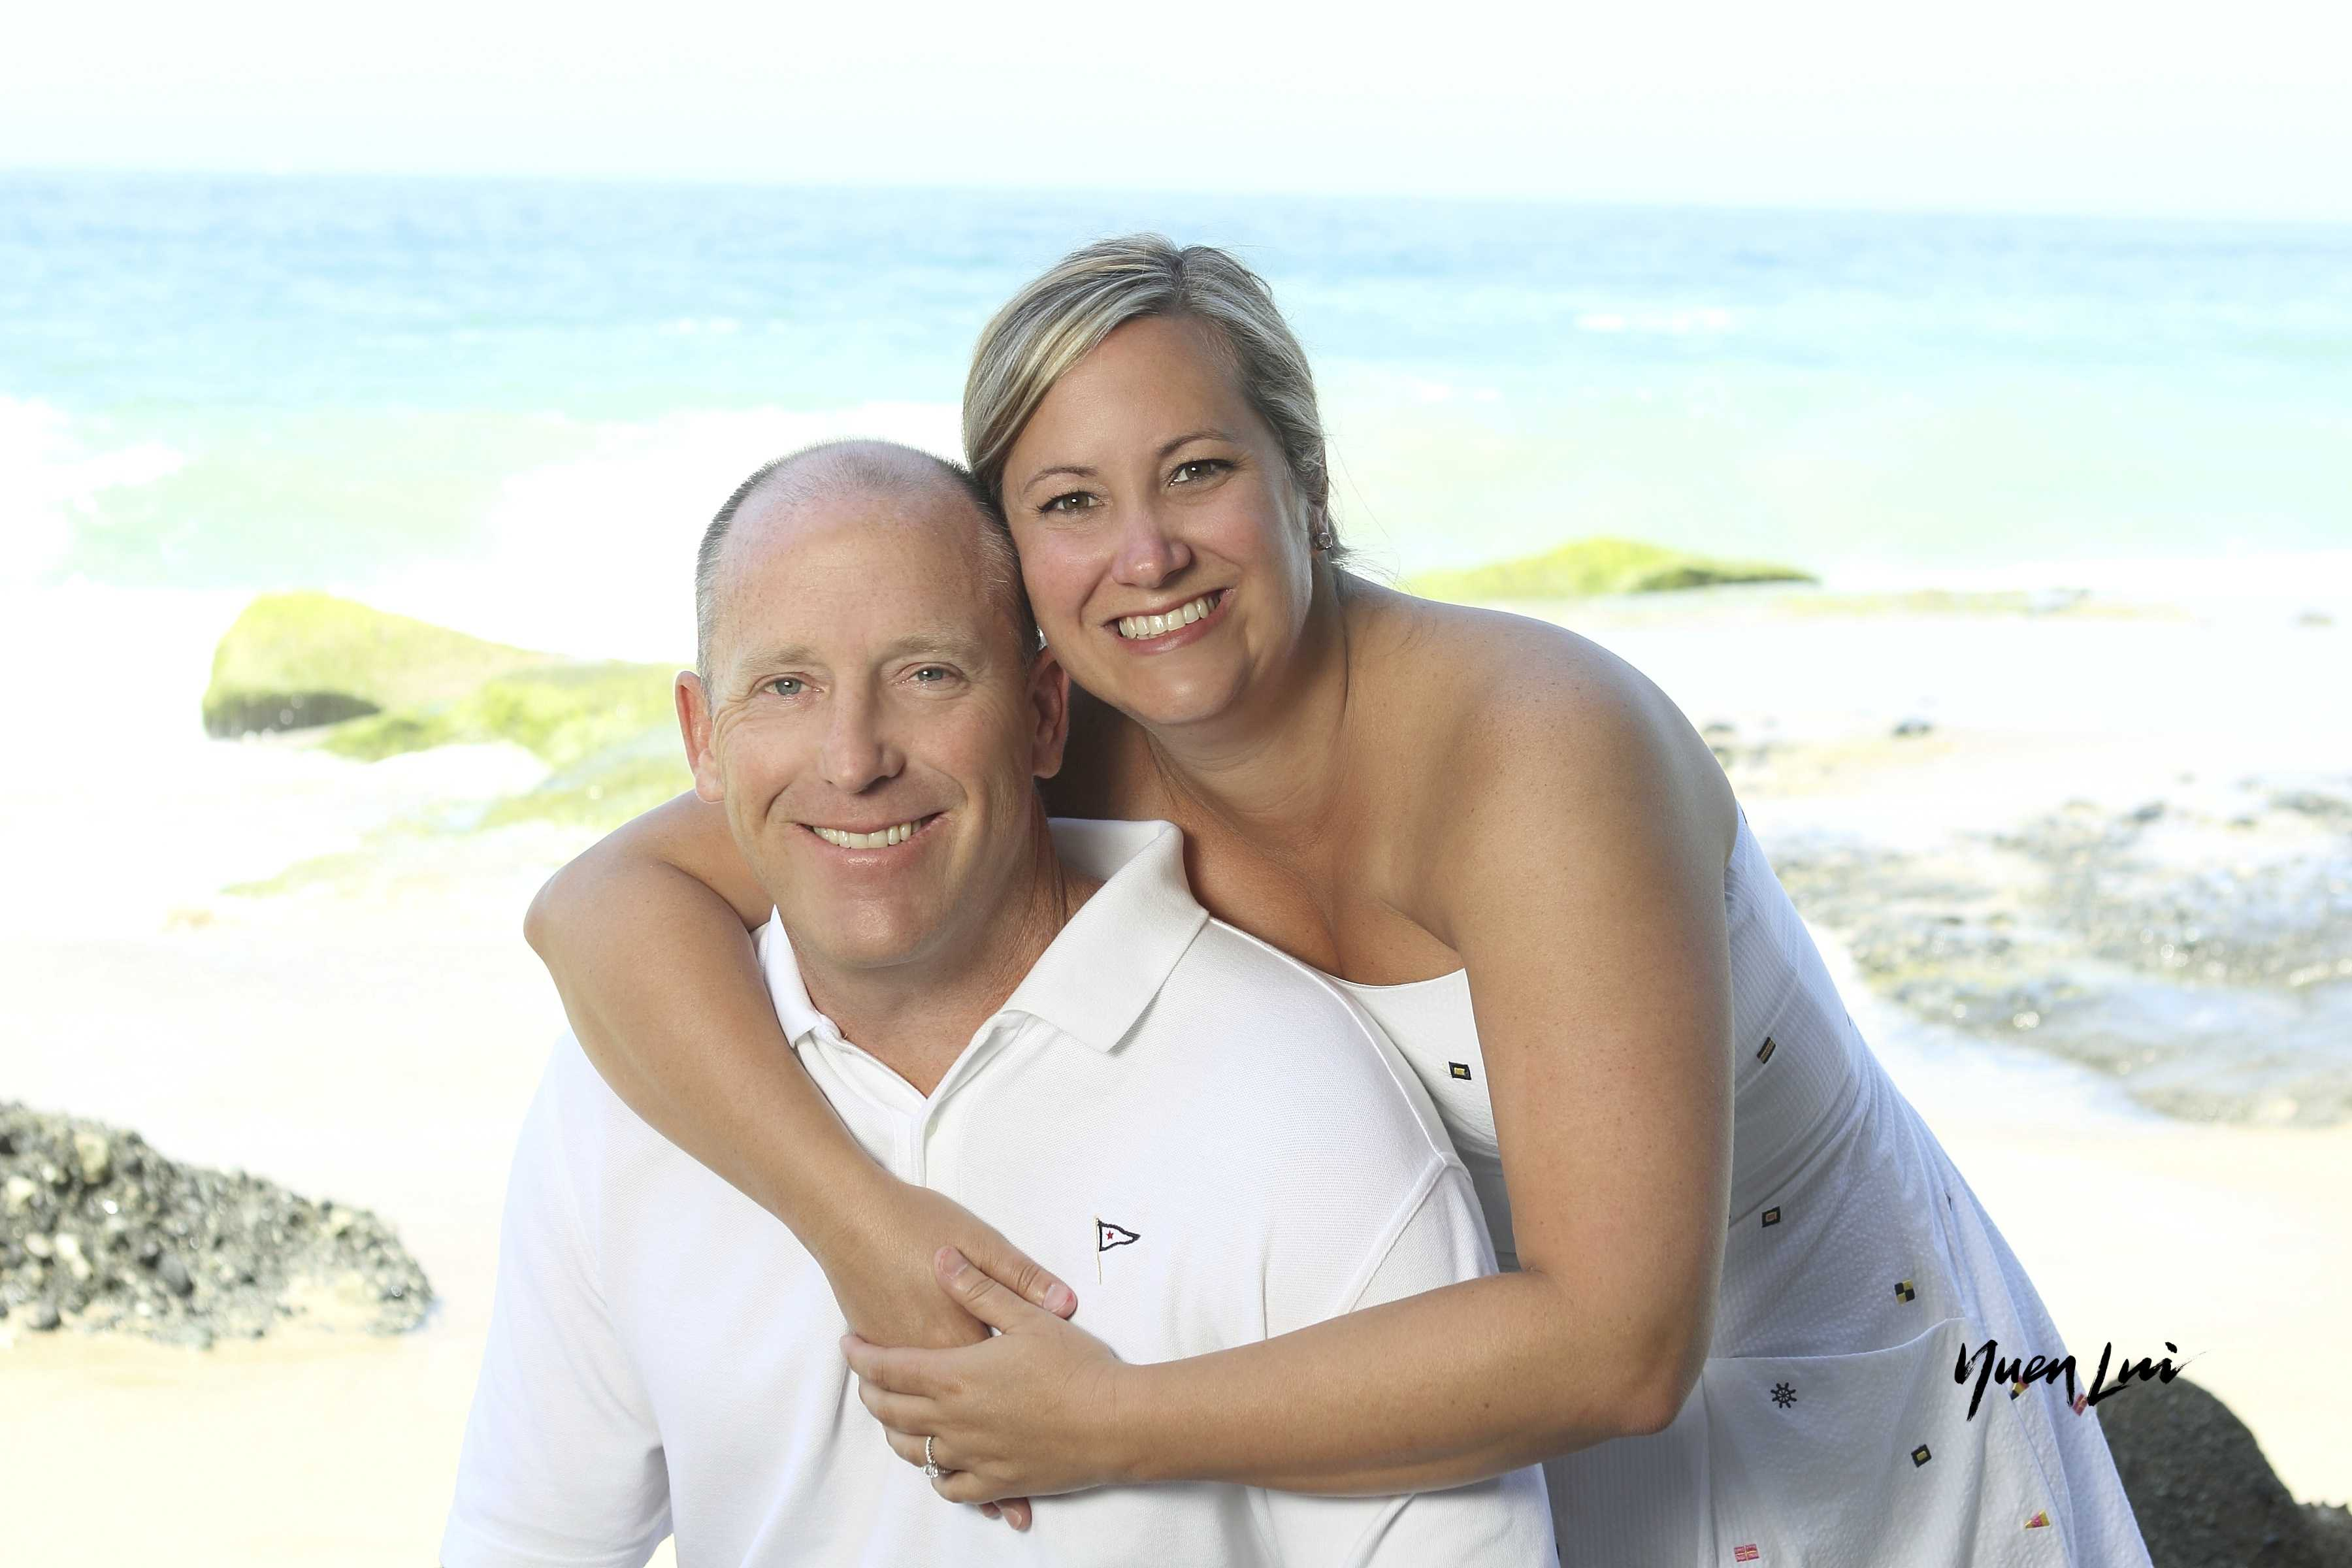 Slow steps: guidance counselor Challis Michael on finding hope through a loved one's cancer battle